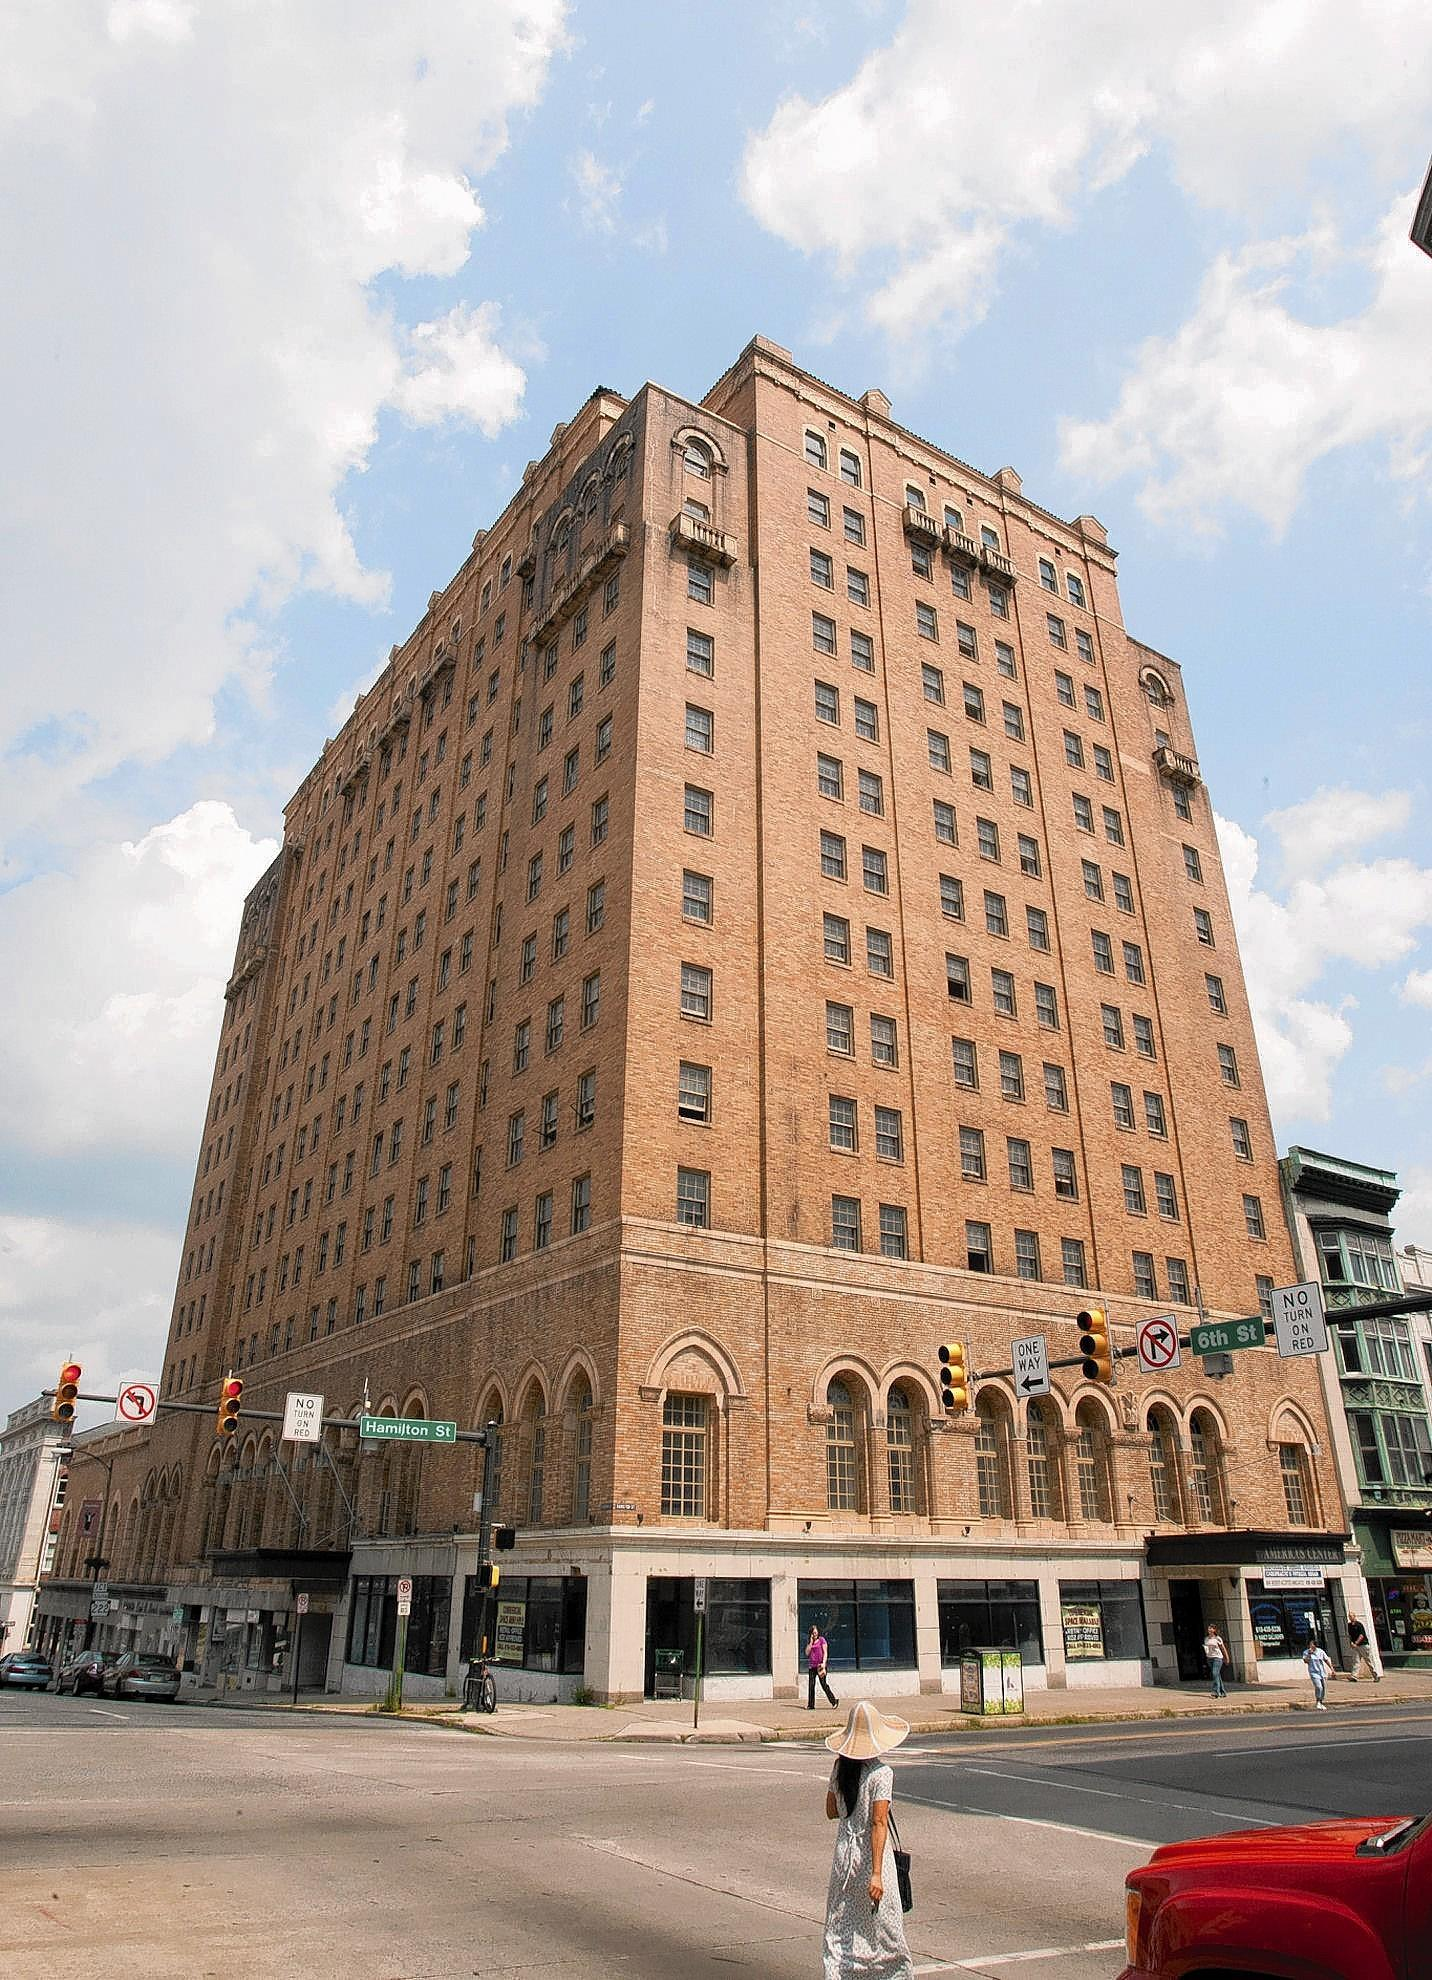 The long-vacant Americus Center Hotel will get another chance to rise from the ashes of Allentown's deteriorated downtown, but only if its owner agrees to recapture the days when its marble floors and crystal chandeliers made it one of the region's swankiest hotels.